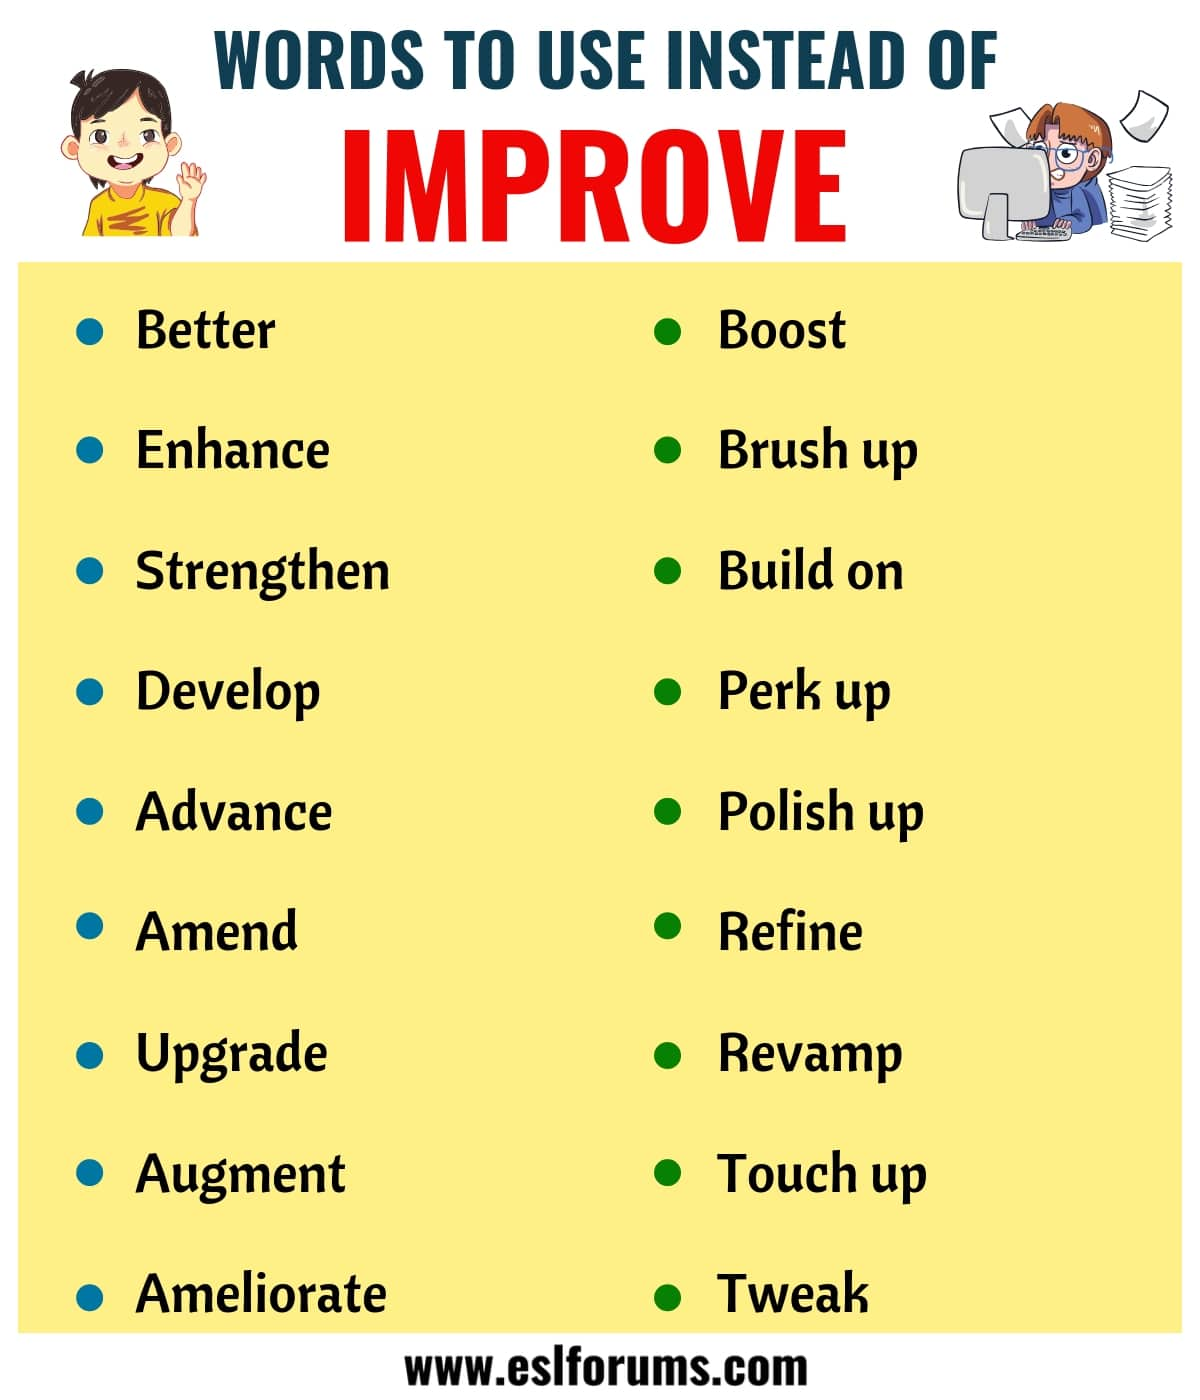 IMPROVE Synonym: List of 19 Synonyms for Improve with Examples